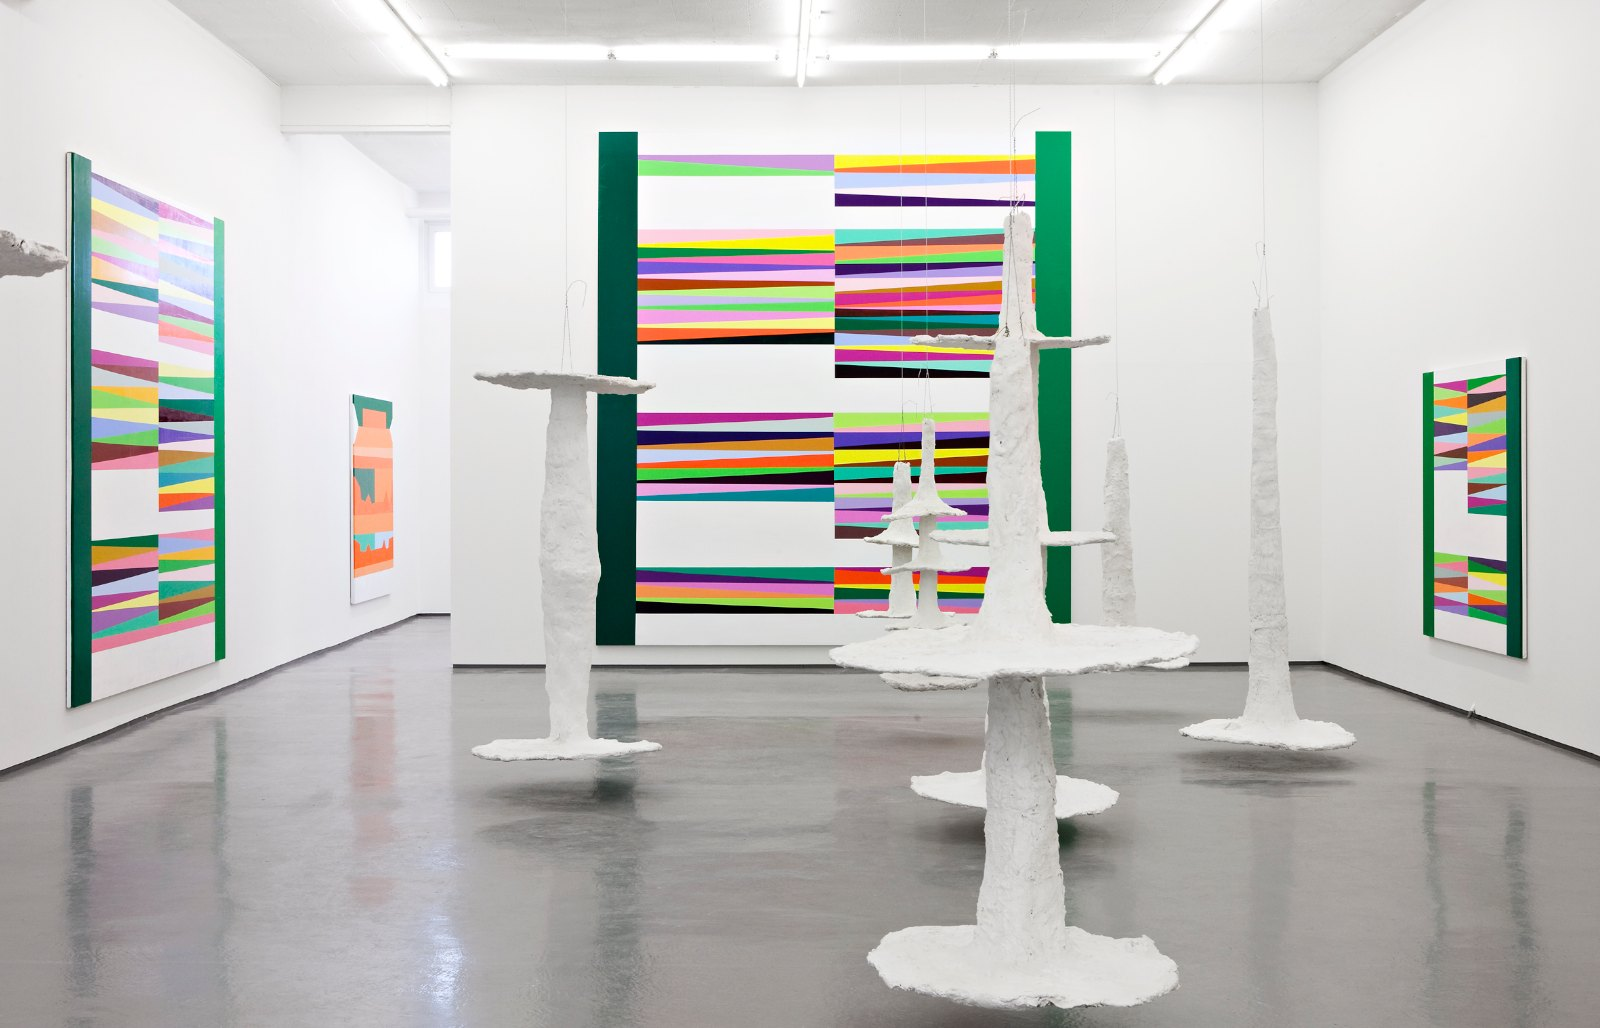 Installation view, Galleri Riis, Oslo, 2010. The Limboes, 2007-08, plaster, metal, different sizes up to 300 cm